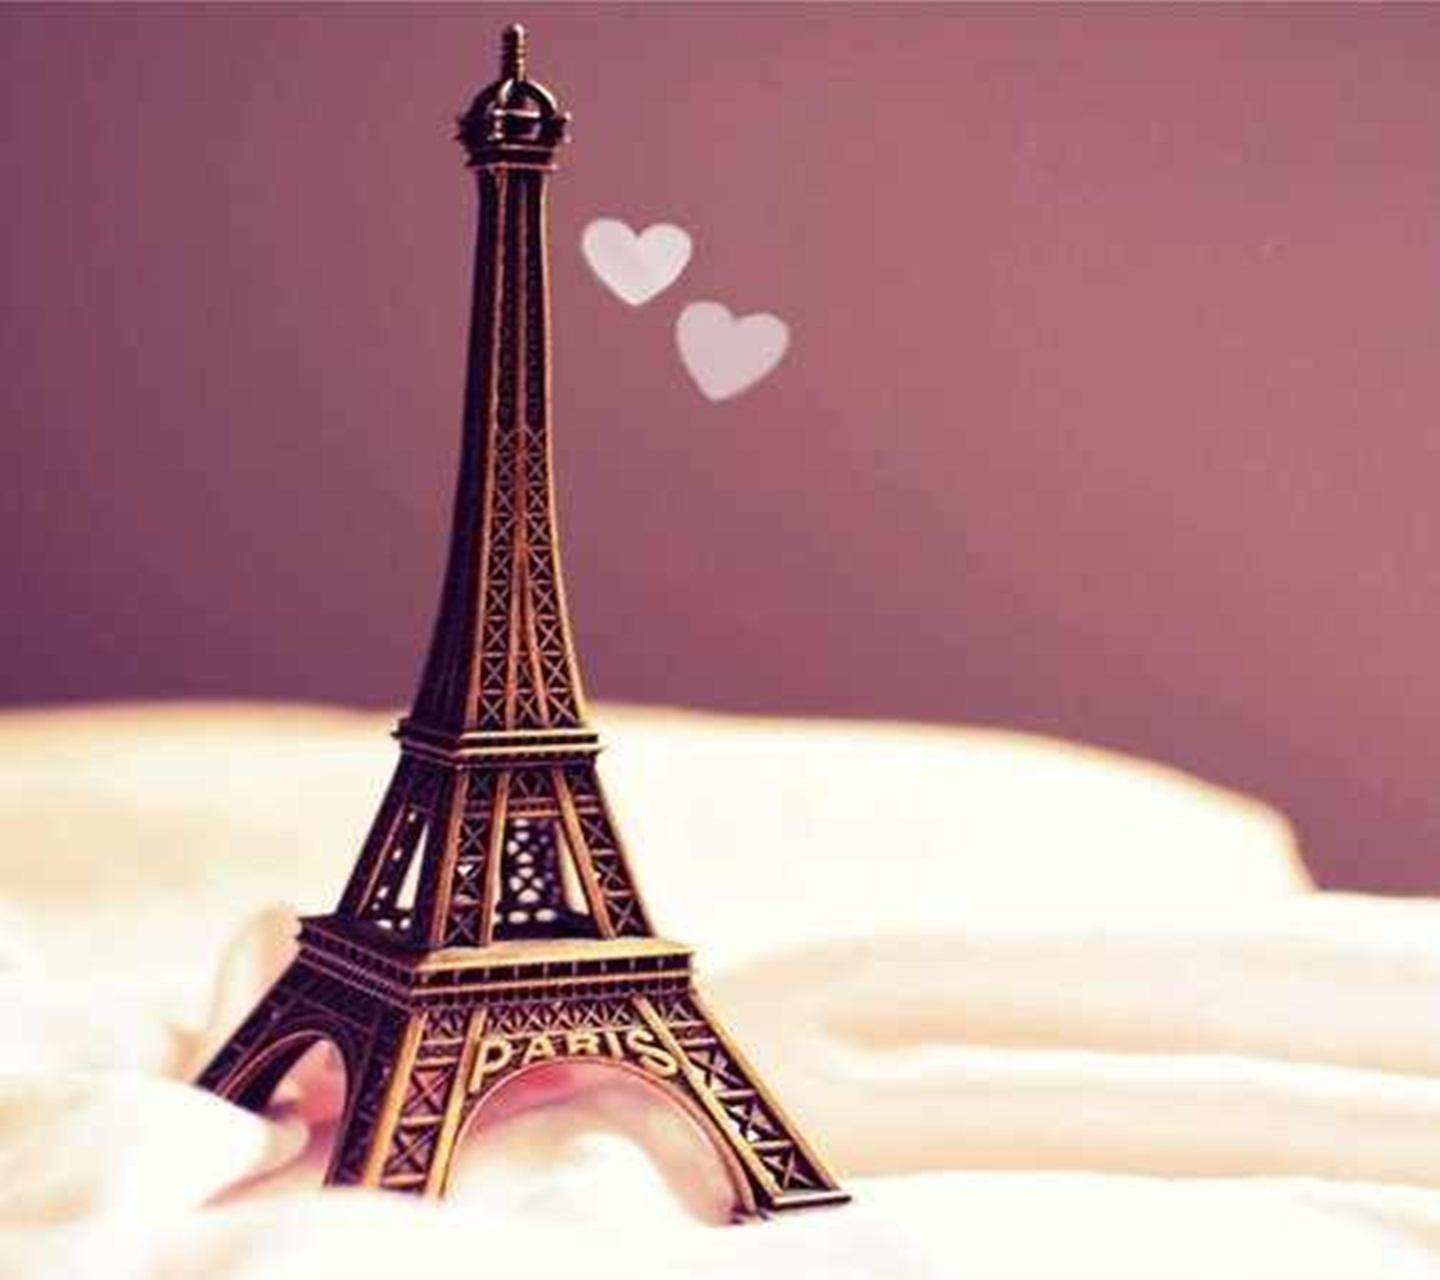 Download Cute Eiffel Tower Hd Wallpaper Abstract Love Wallpaper